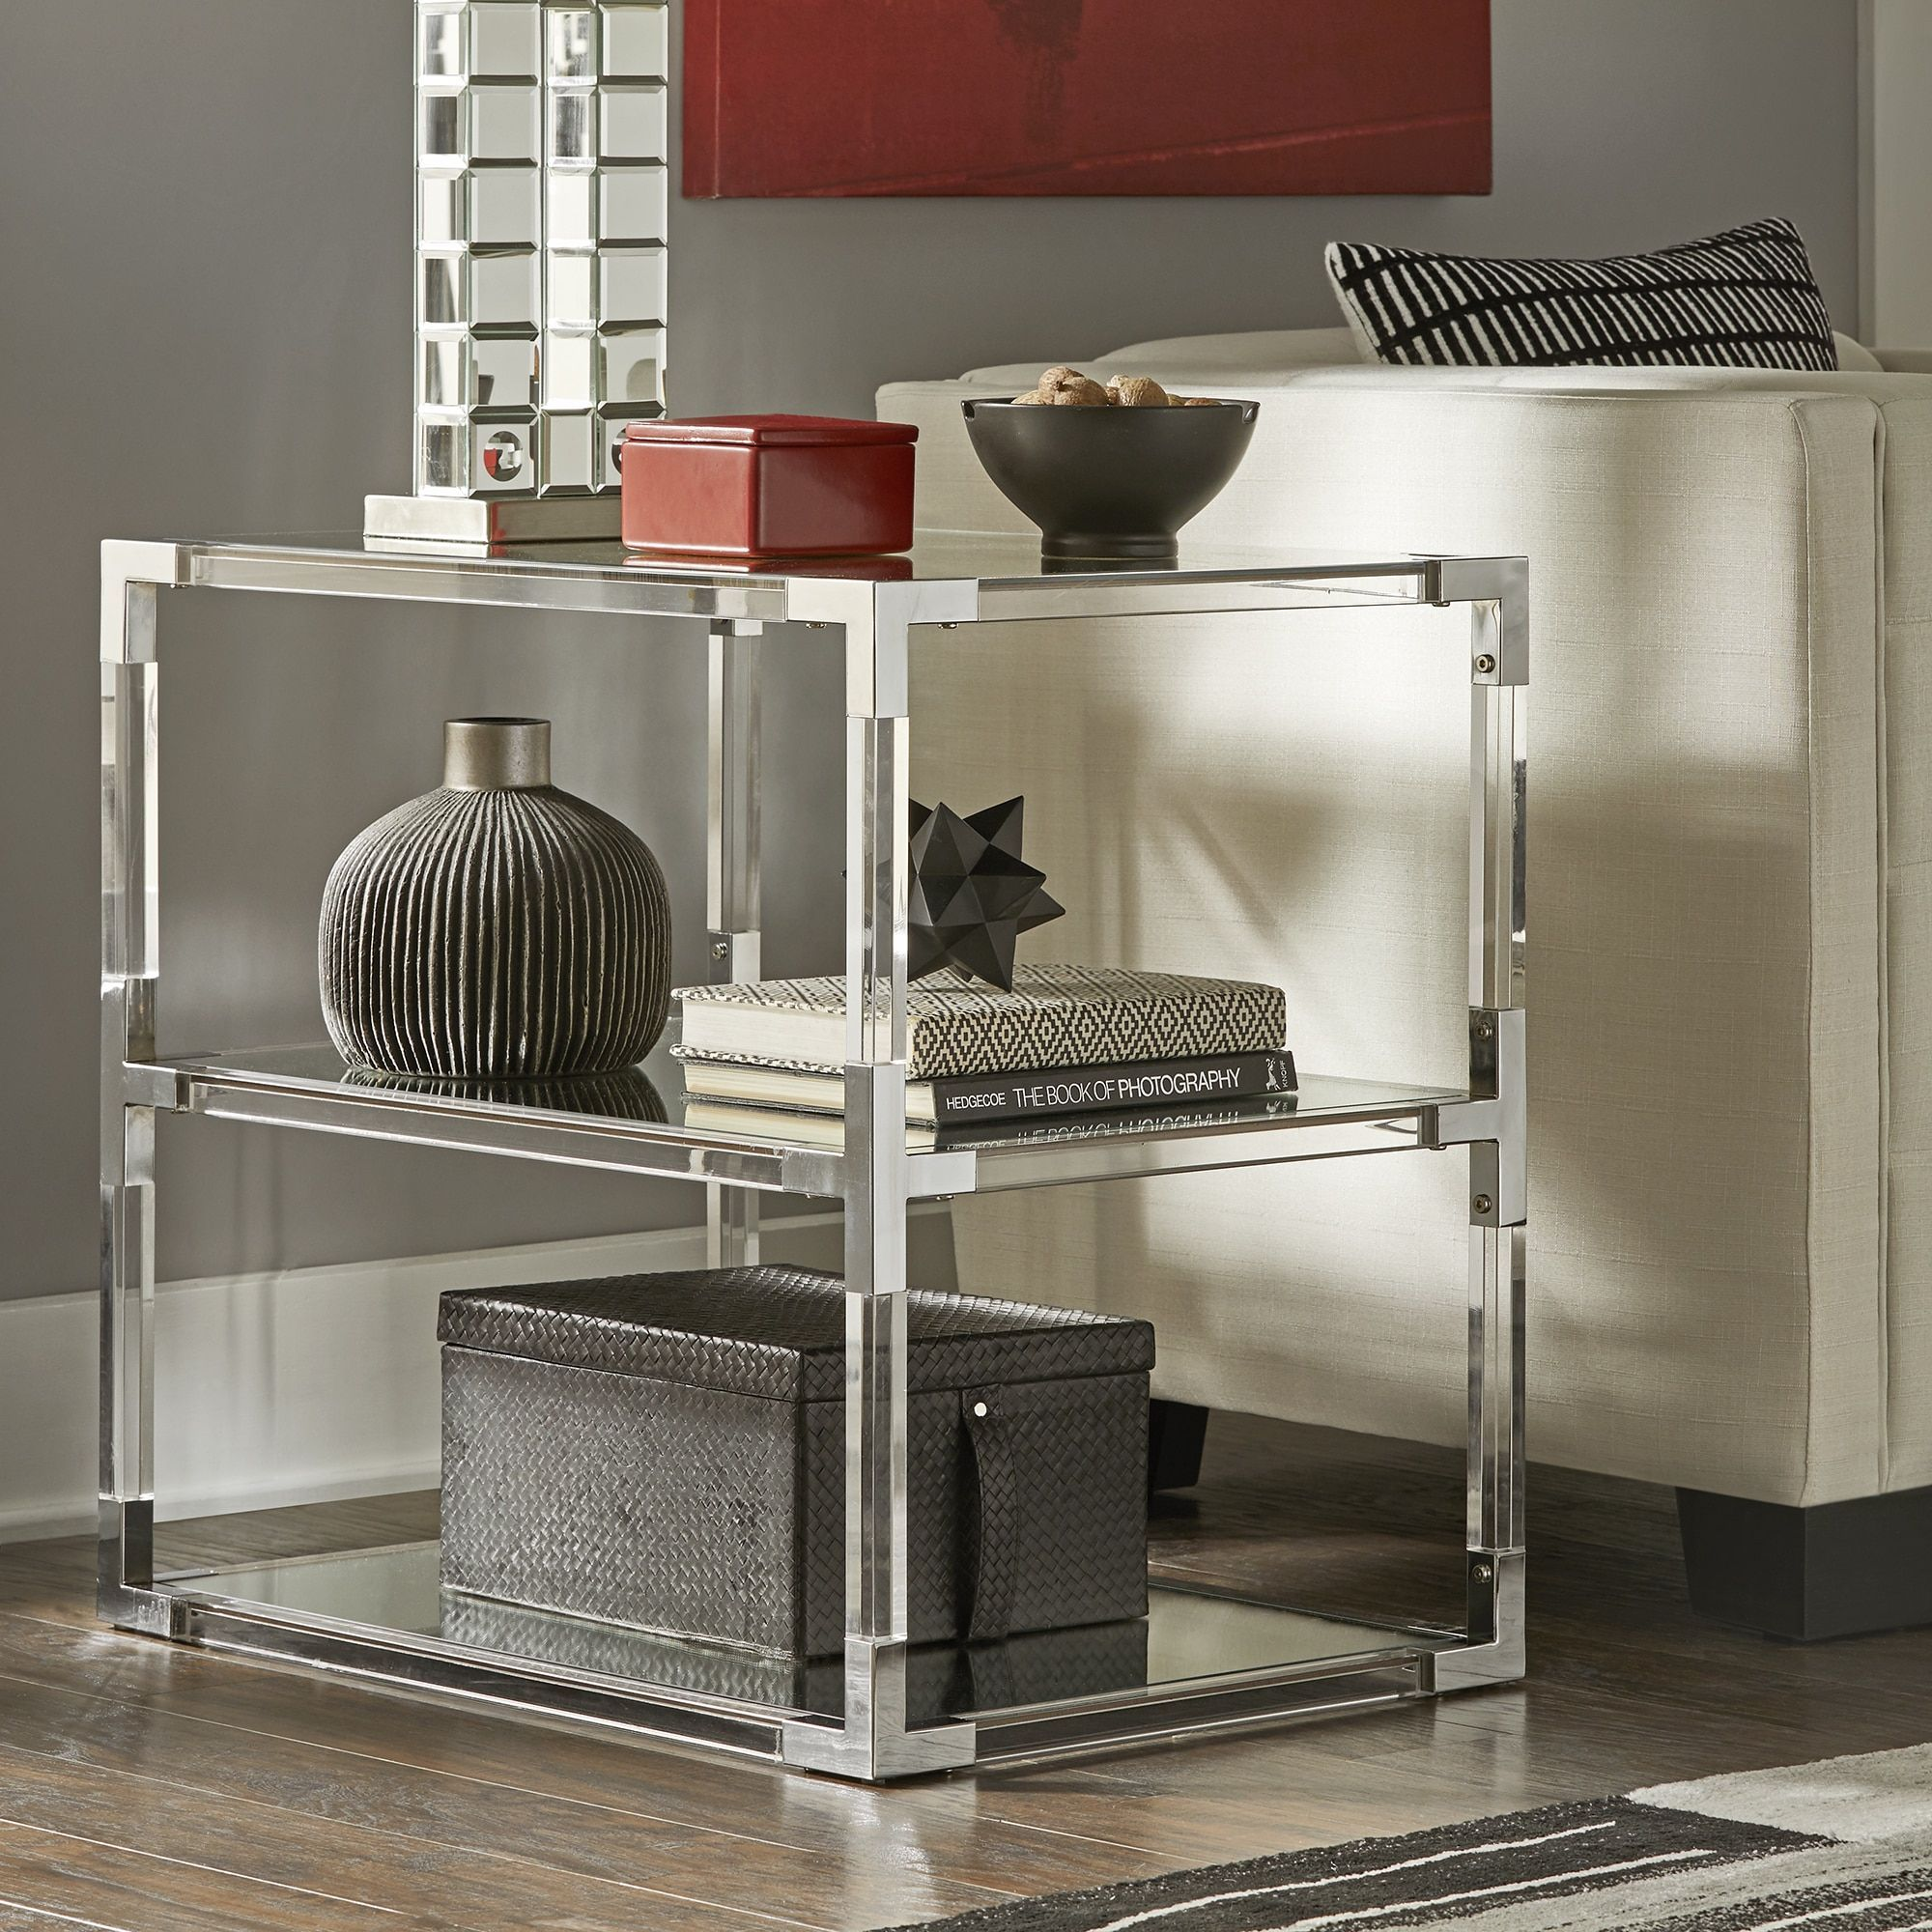 Cyrus Chrome Corner Mirrored Shelf End Table by Inspire Q